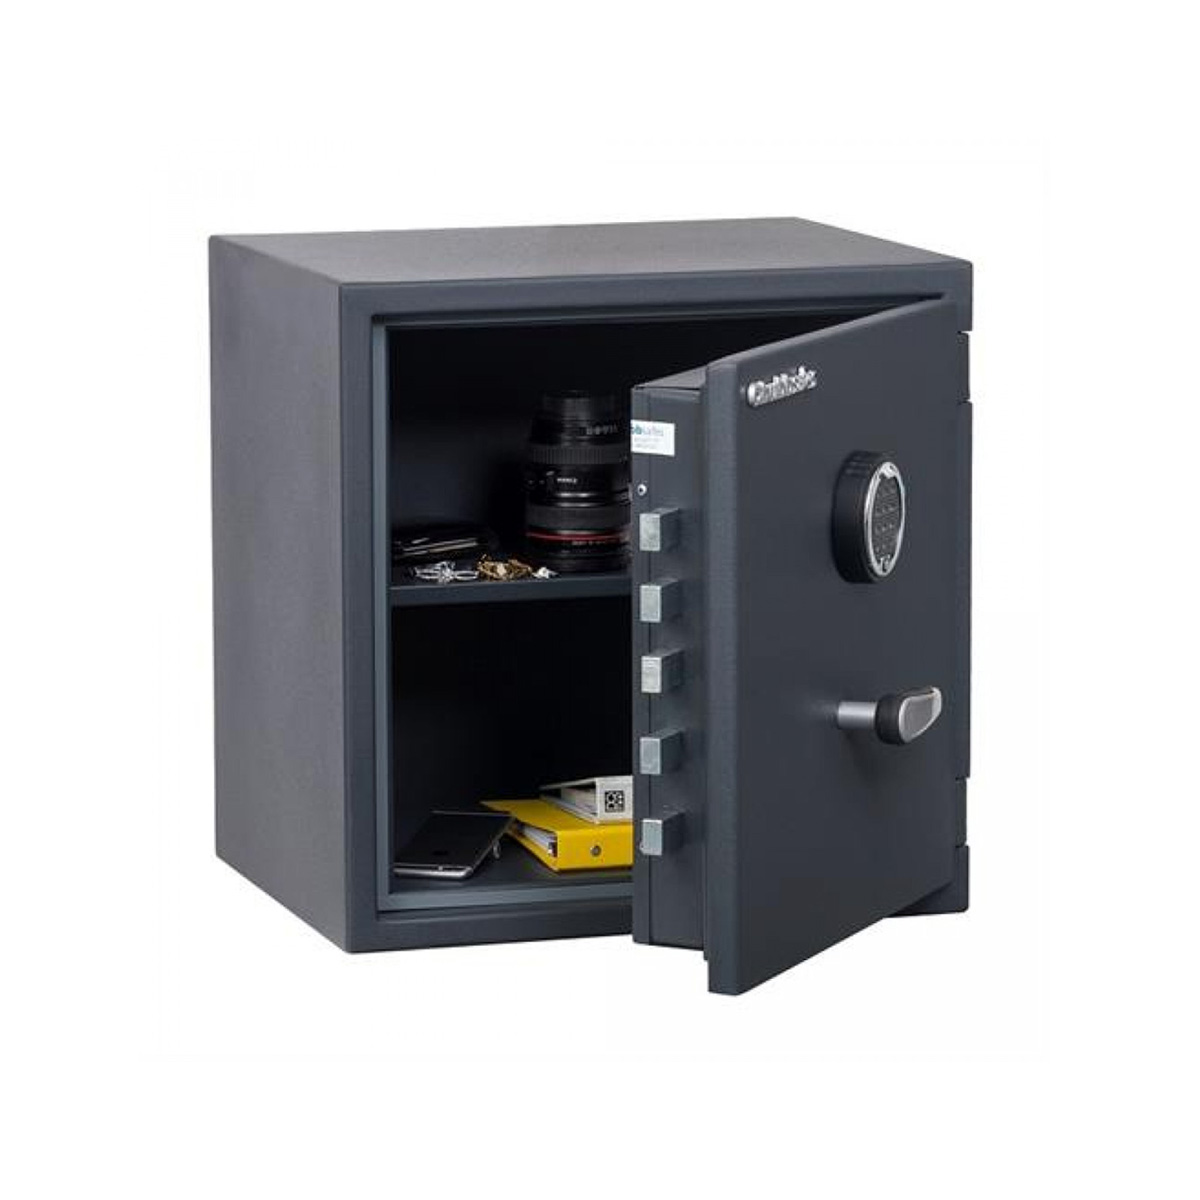 Chubbsafes senator m2 safe internal